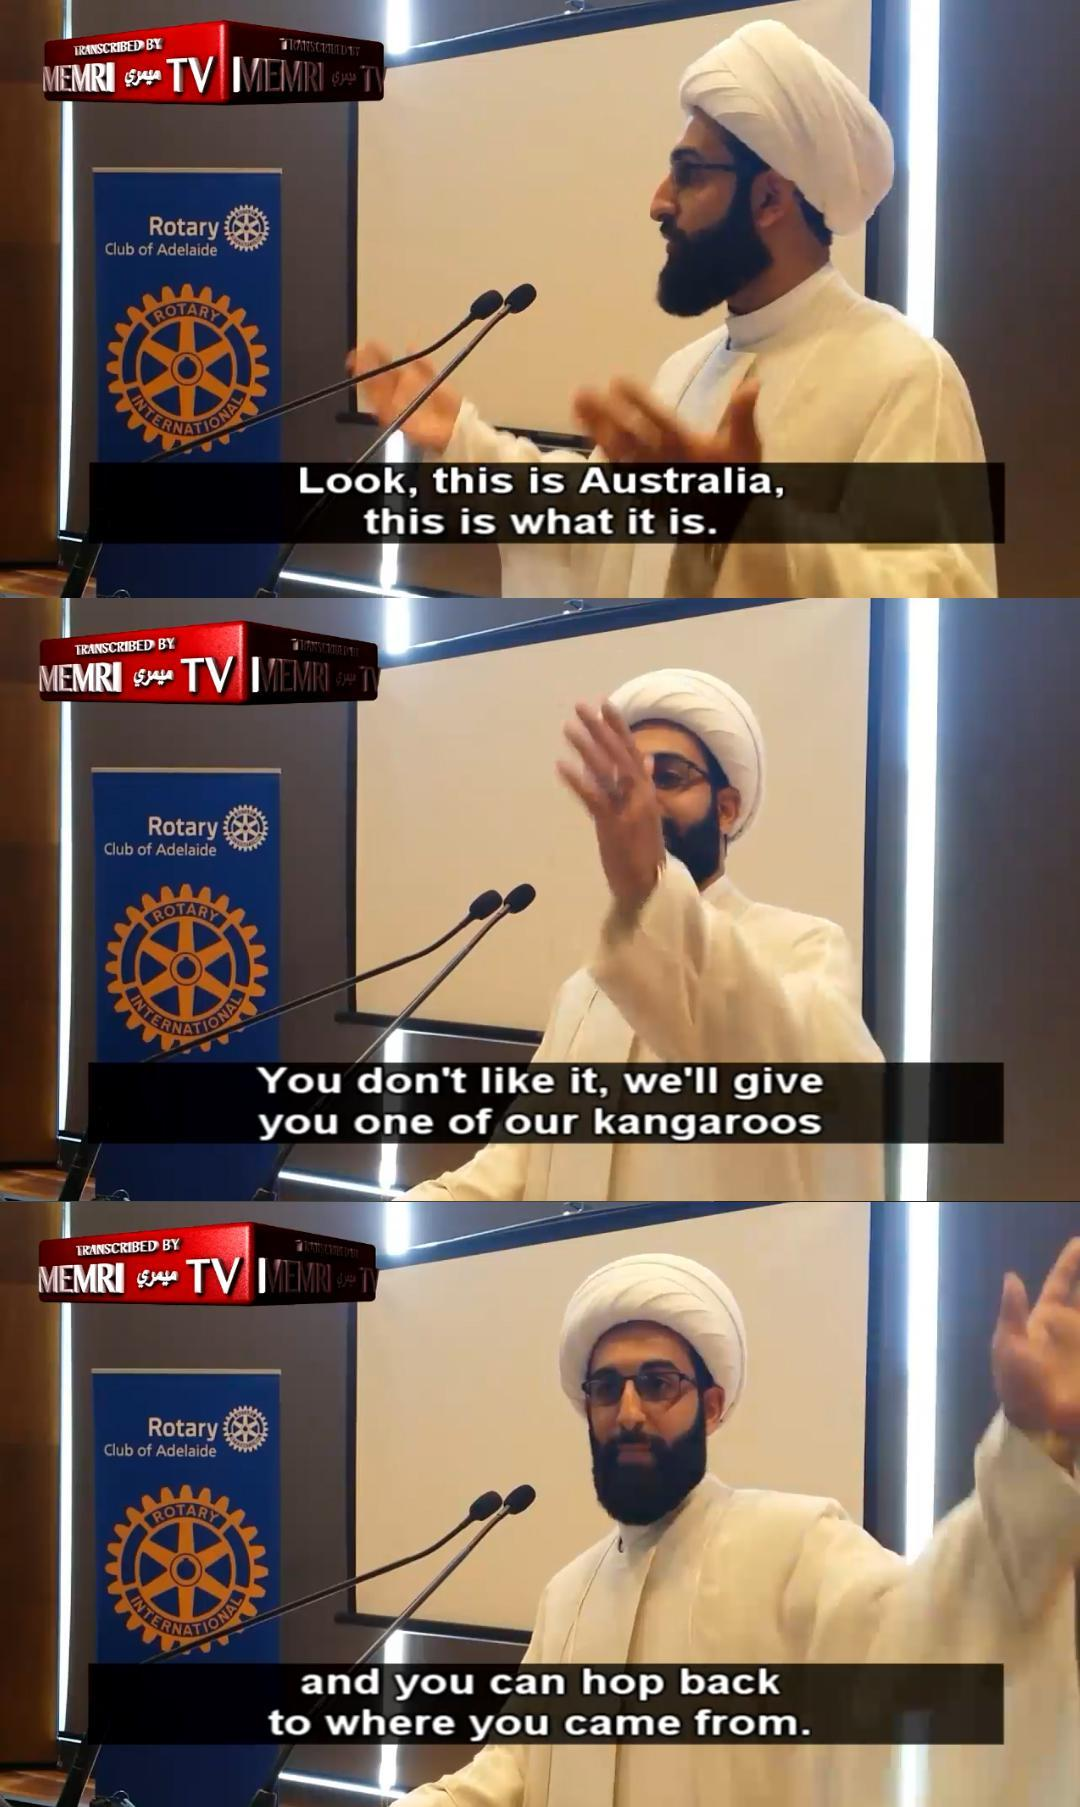 Even though, according to Islamic Law, Kangaroos should be killed in all cases - meme